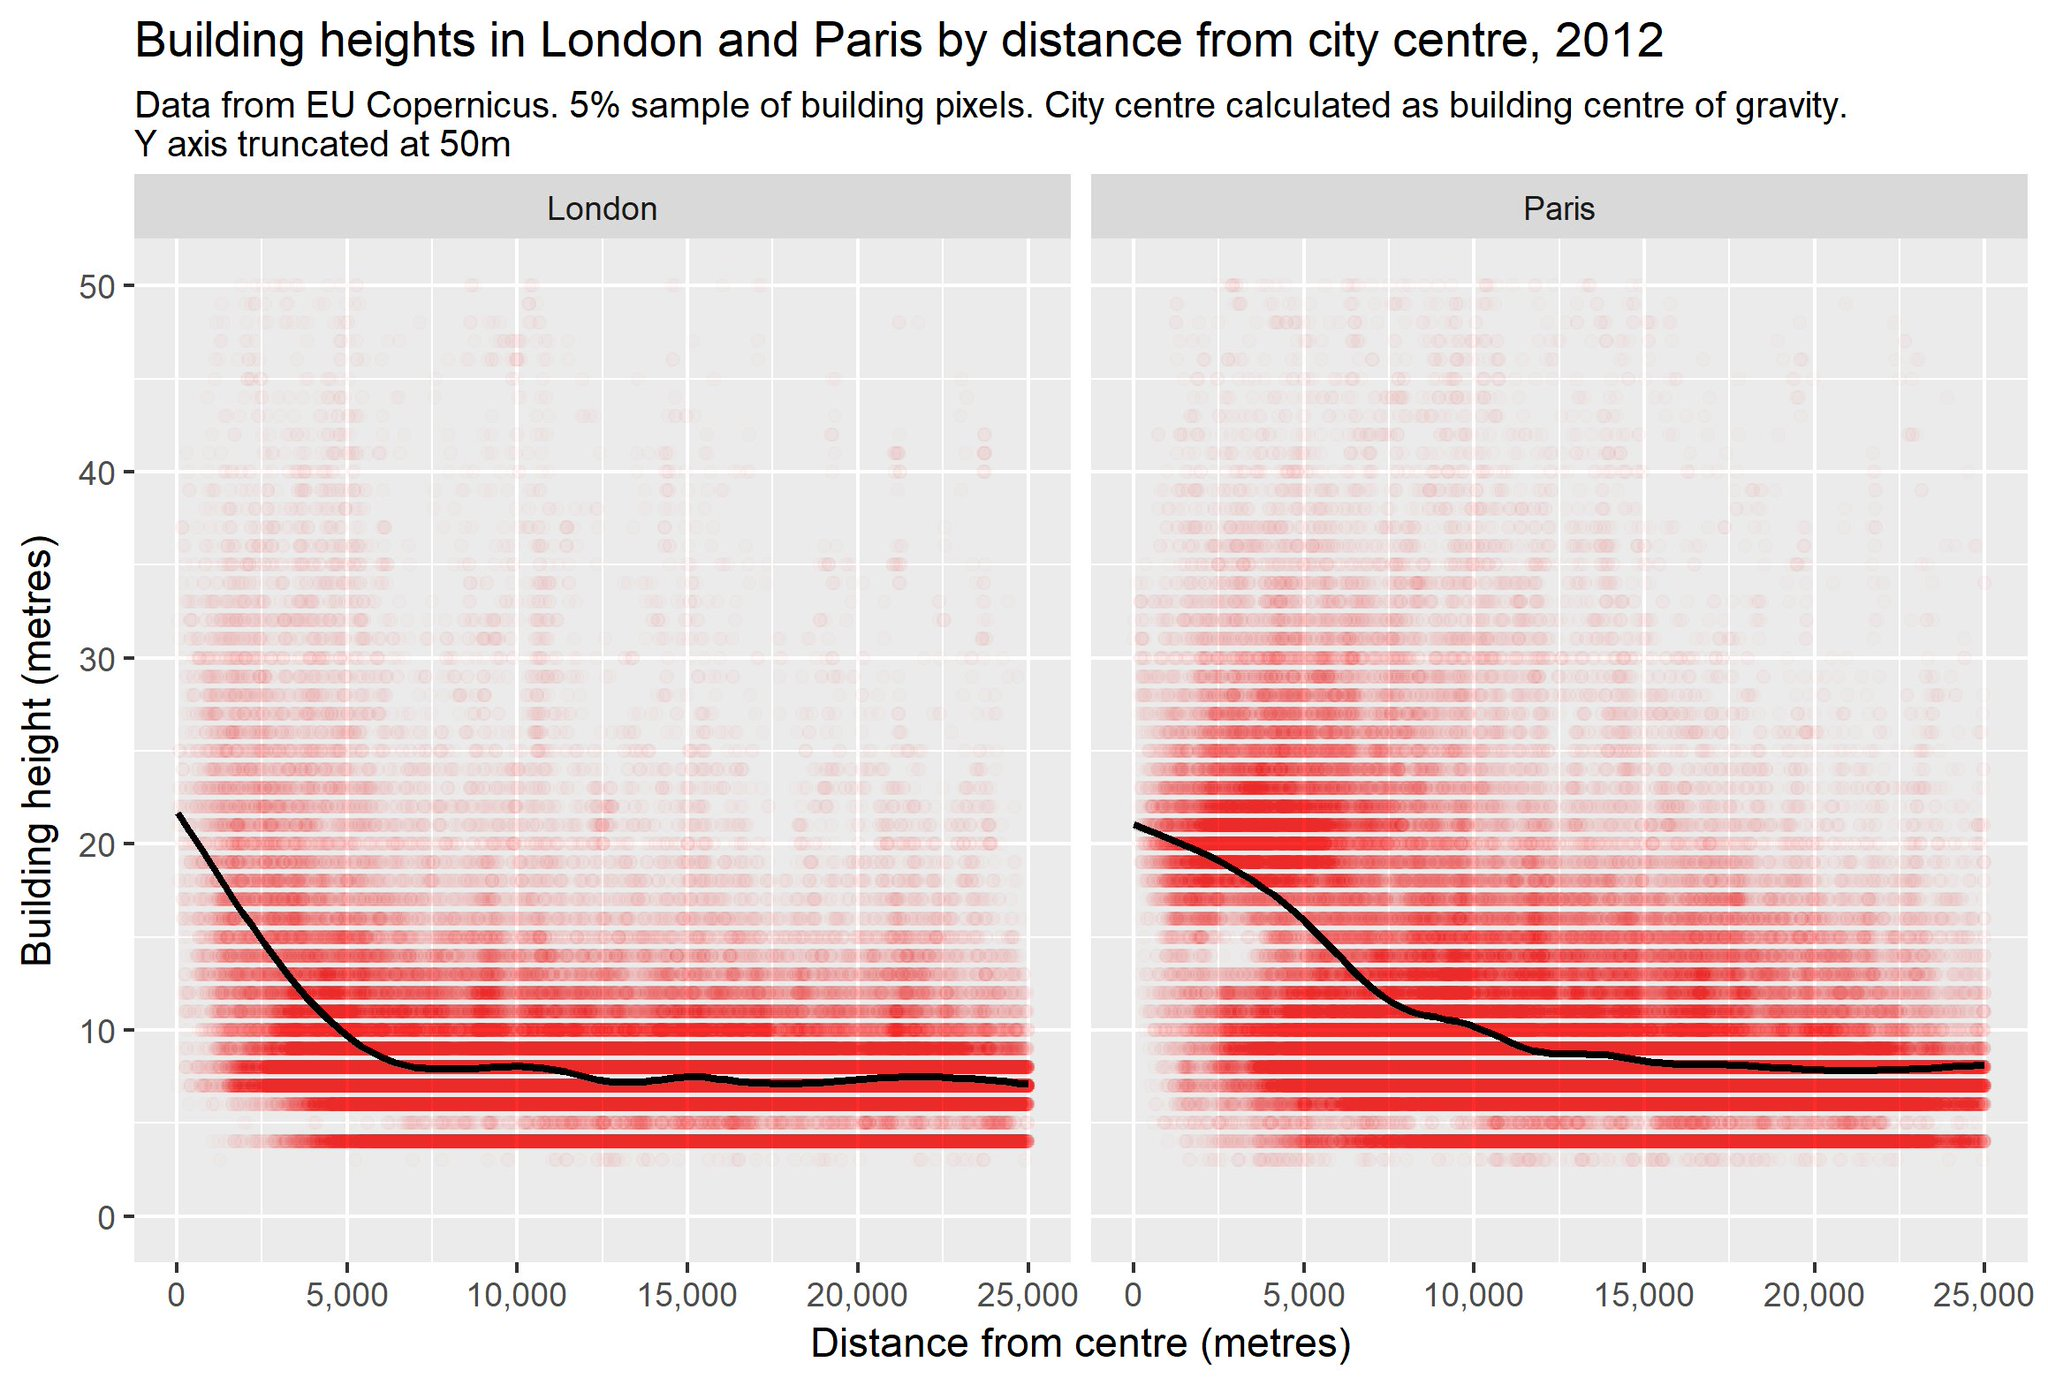 building heights by distance for London and Paris